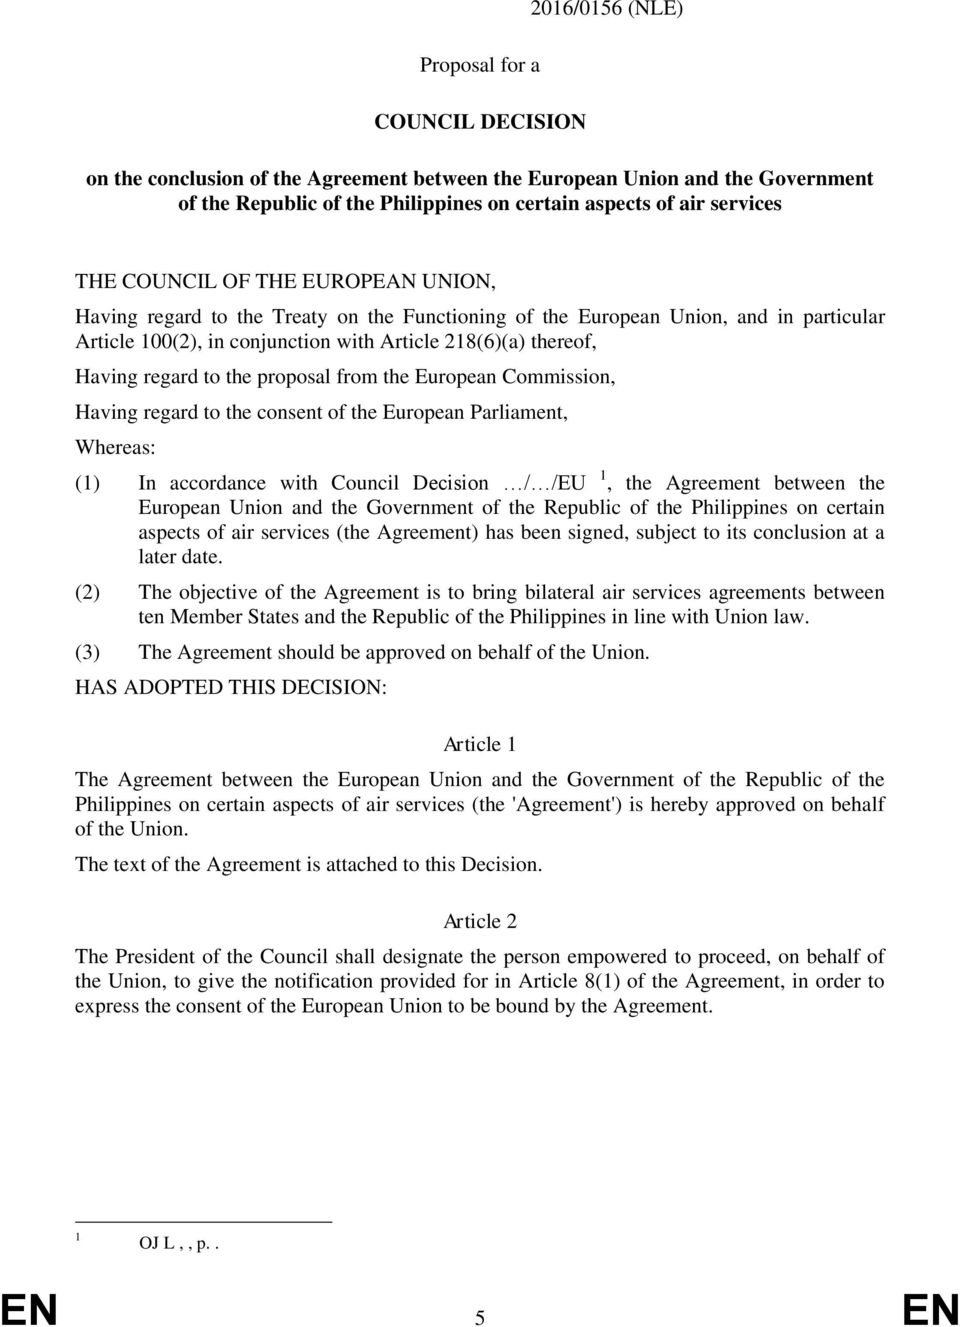 to the proposal from the European Commission, Having regard to the consent of the European Parliament, Whereas: (1) In accordance with Council Decision / /EU 1, the Agreement between the European